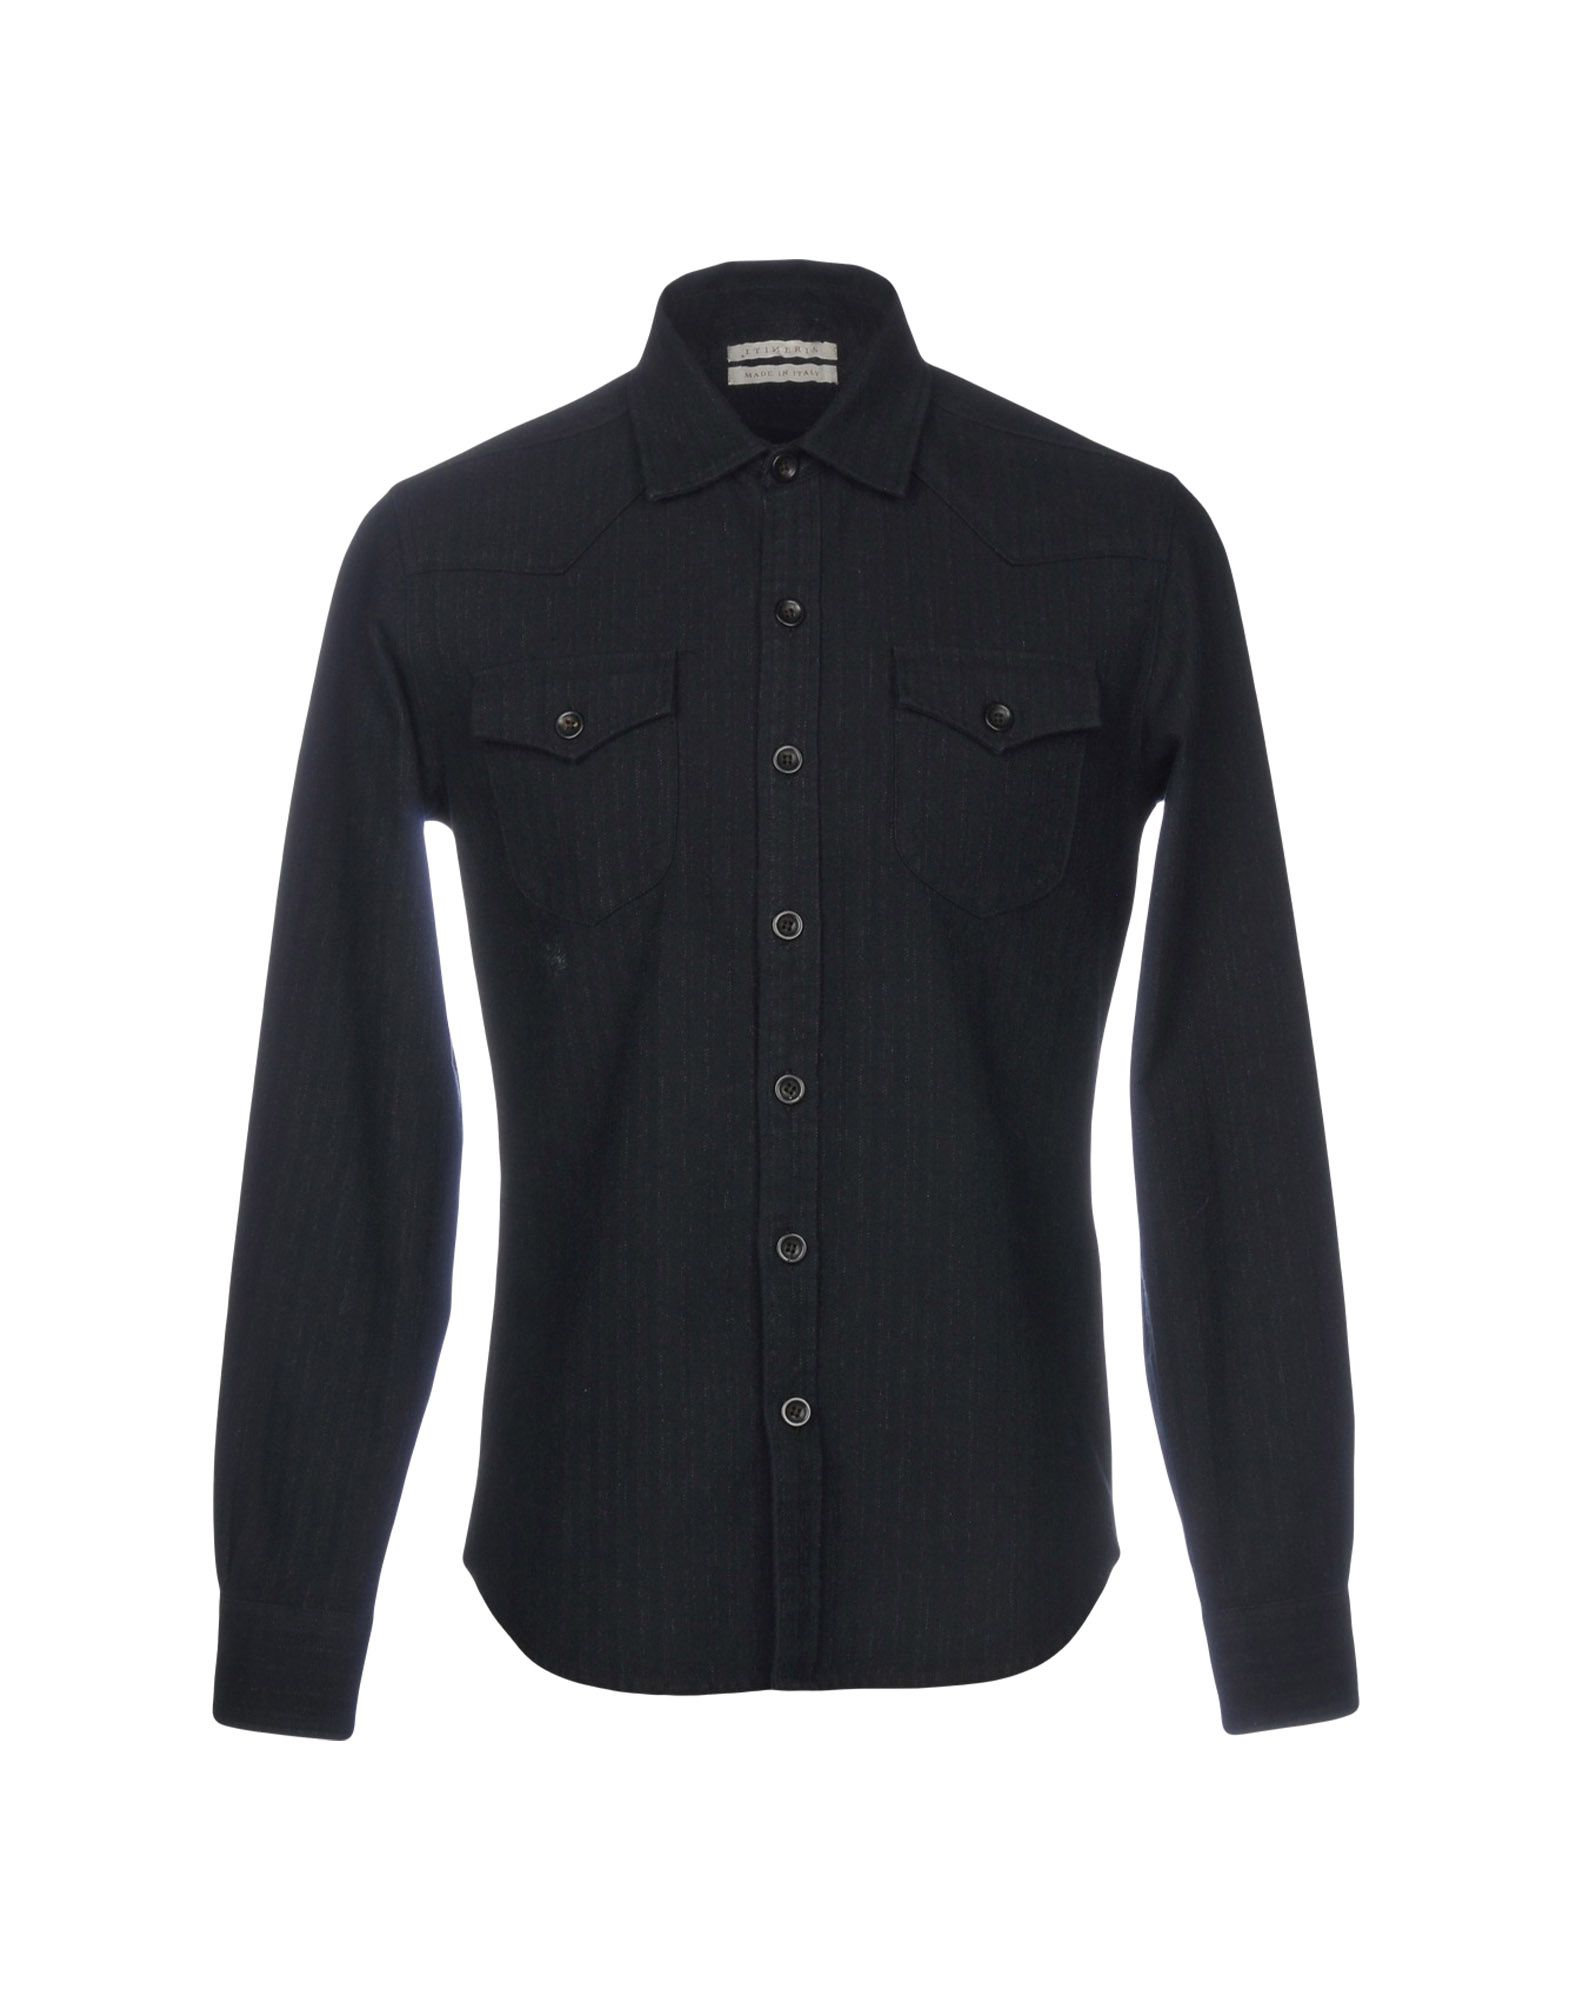 ITINERIS Solid Color Shirt in Dark Blue